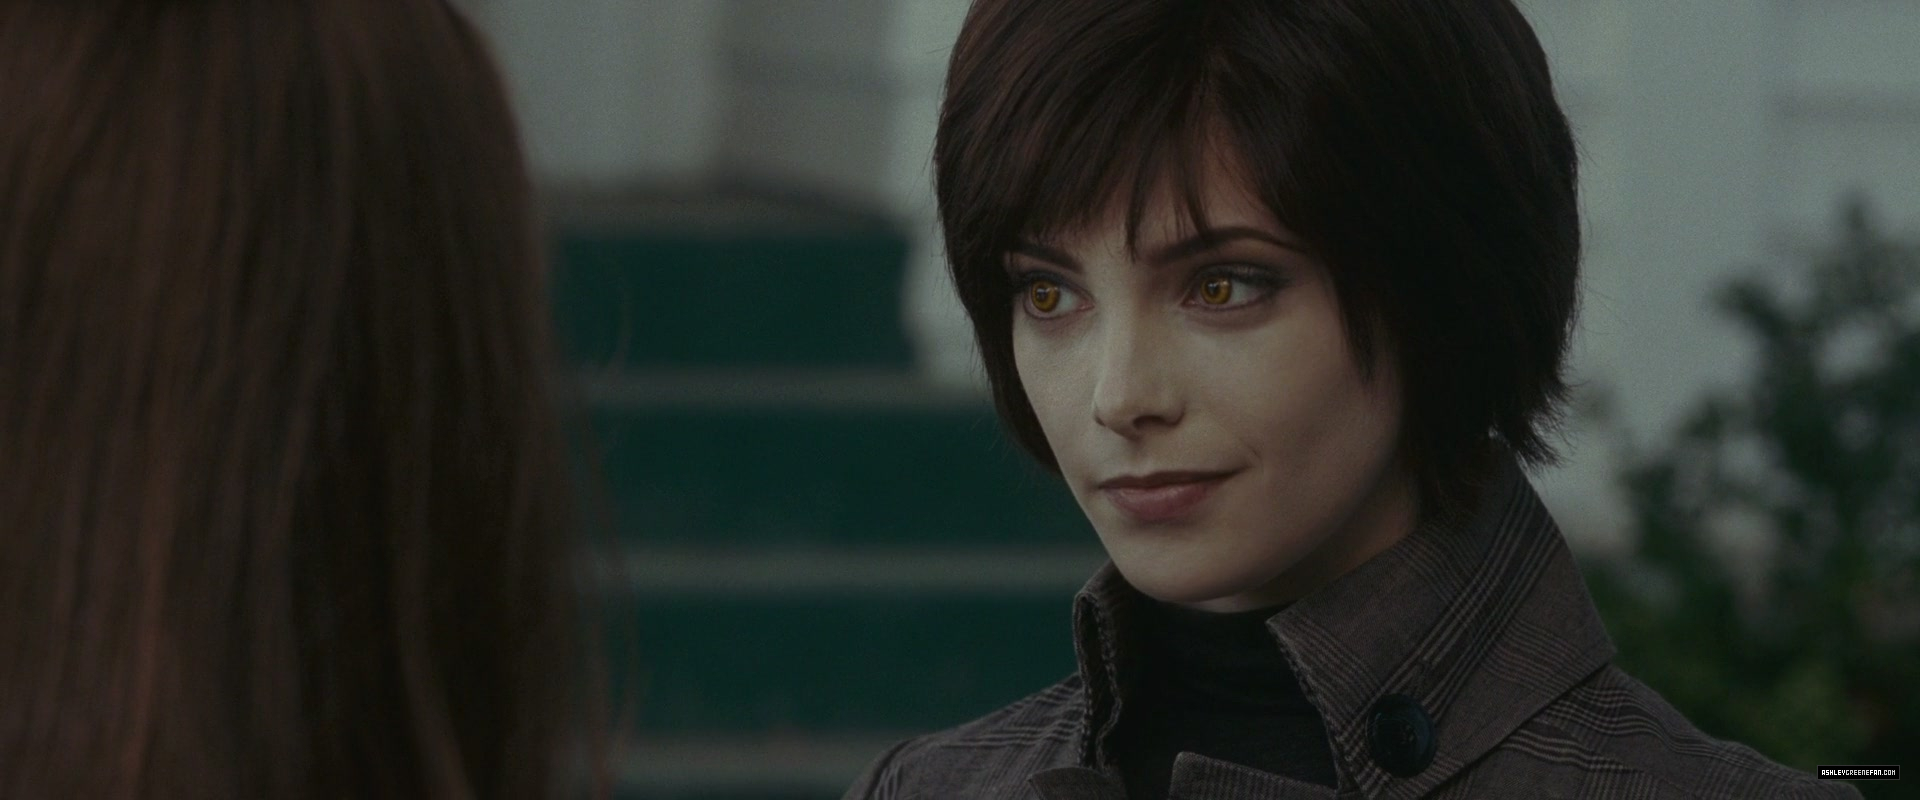 Eclipse Movie Screencaps (HQ) - Ashley Greene Image ...